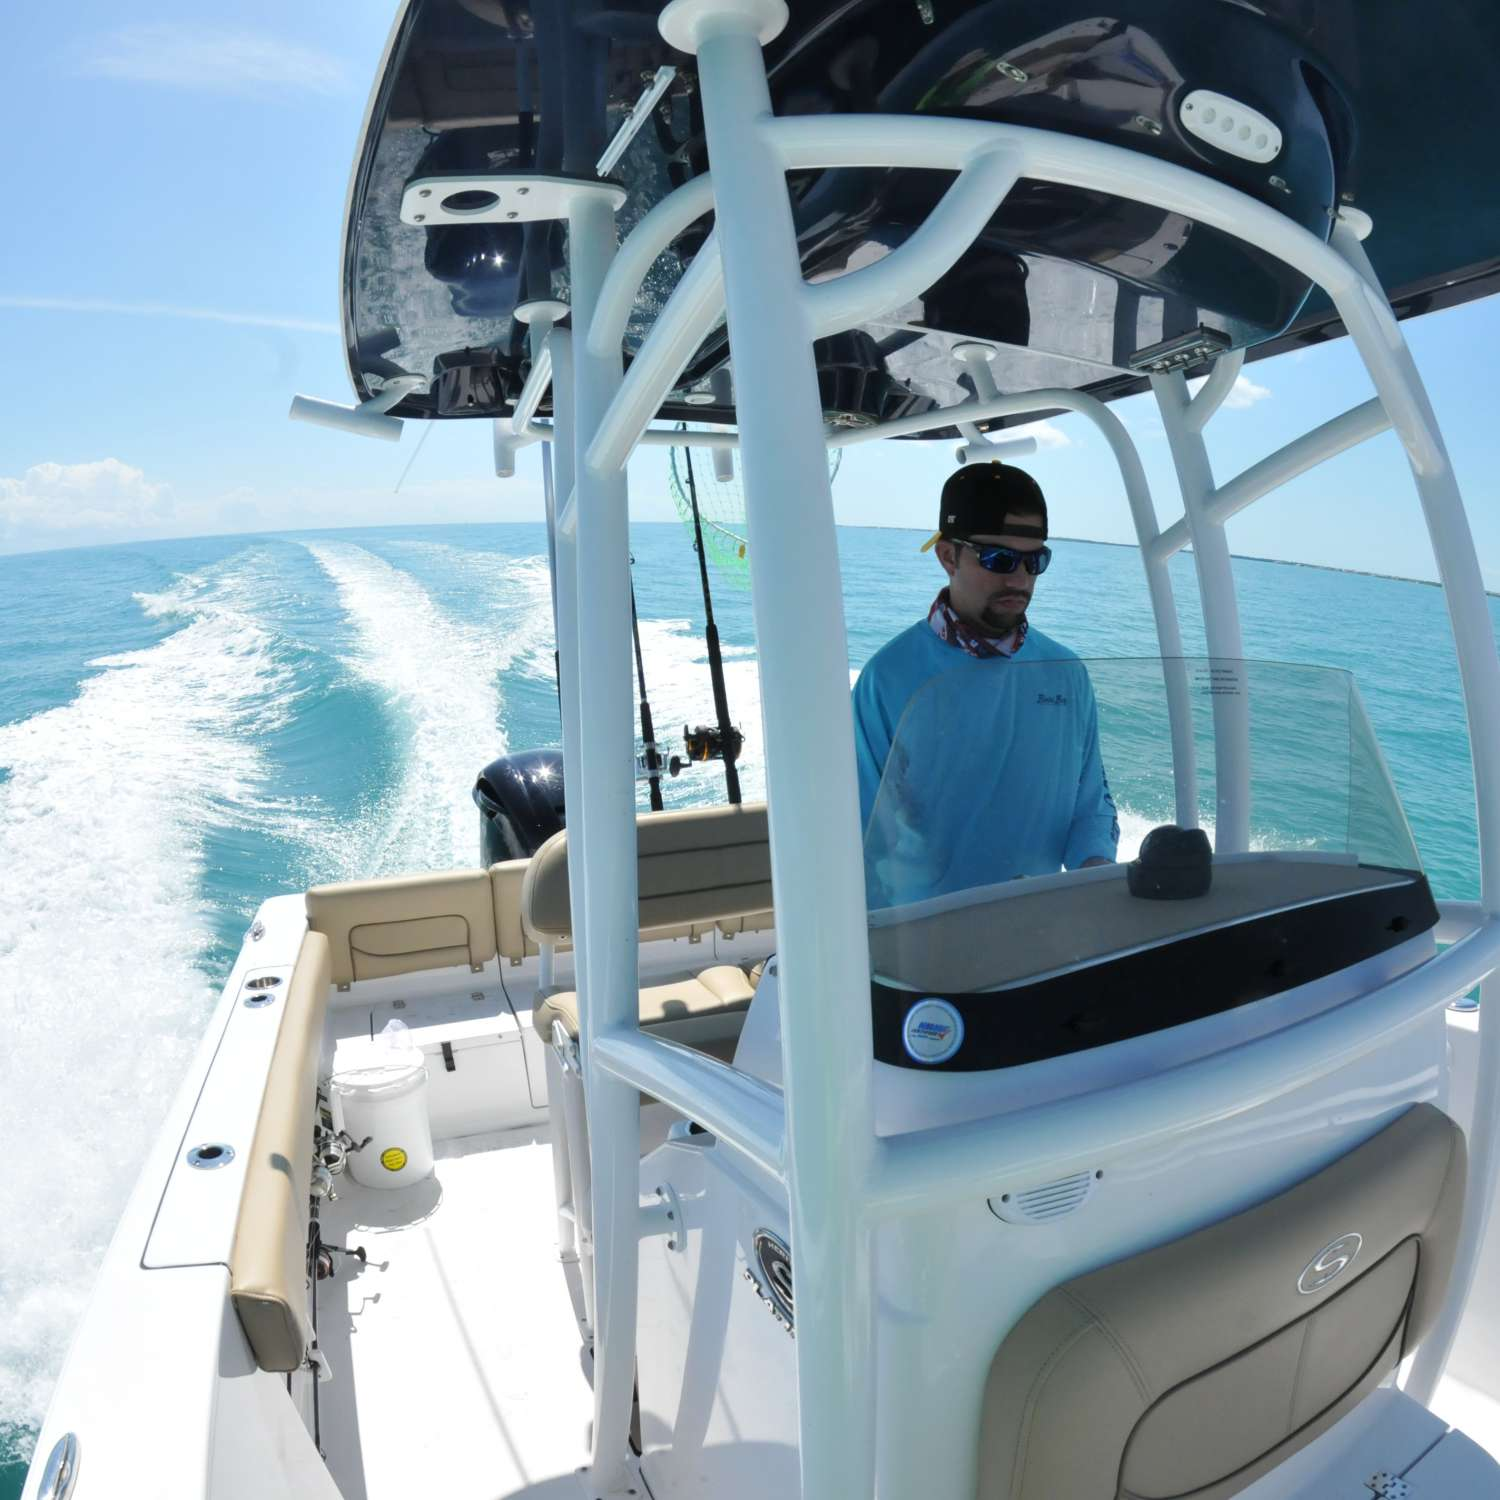 Title: Fishing In The Keys - On board their Sportsman Heritage 231 Center Console - Location: Miami, Florida. Participating in the Photo Contest #SportsmanJune2017